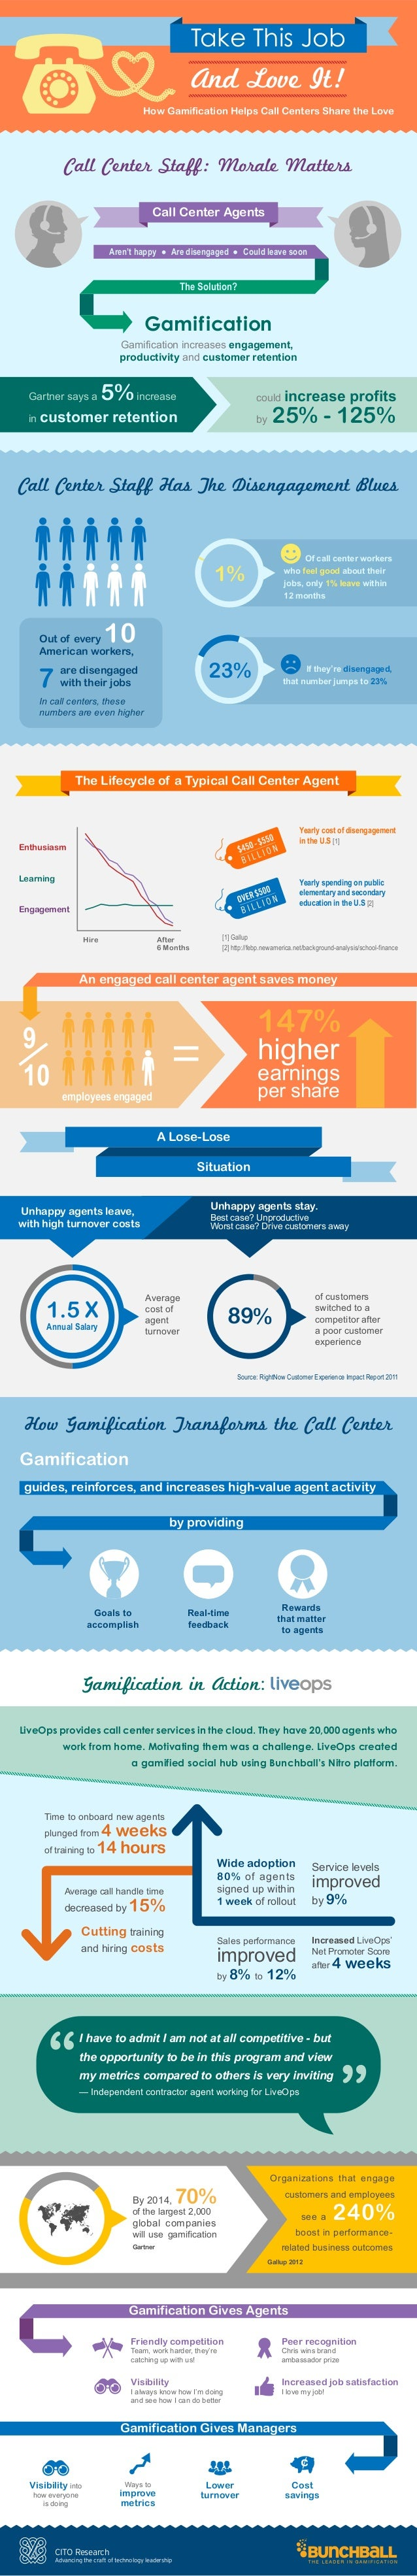 CITO Research: How Gamification Helps Call Centers Share the Love